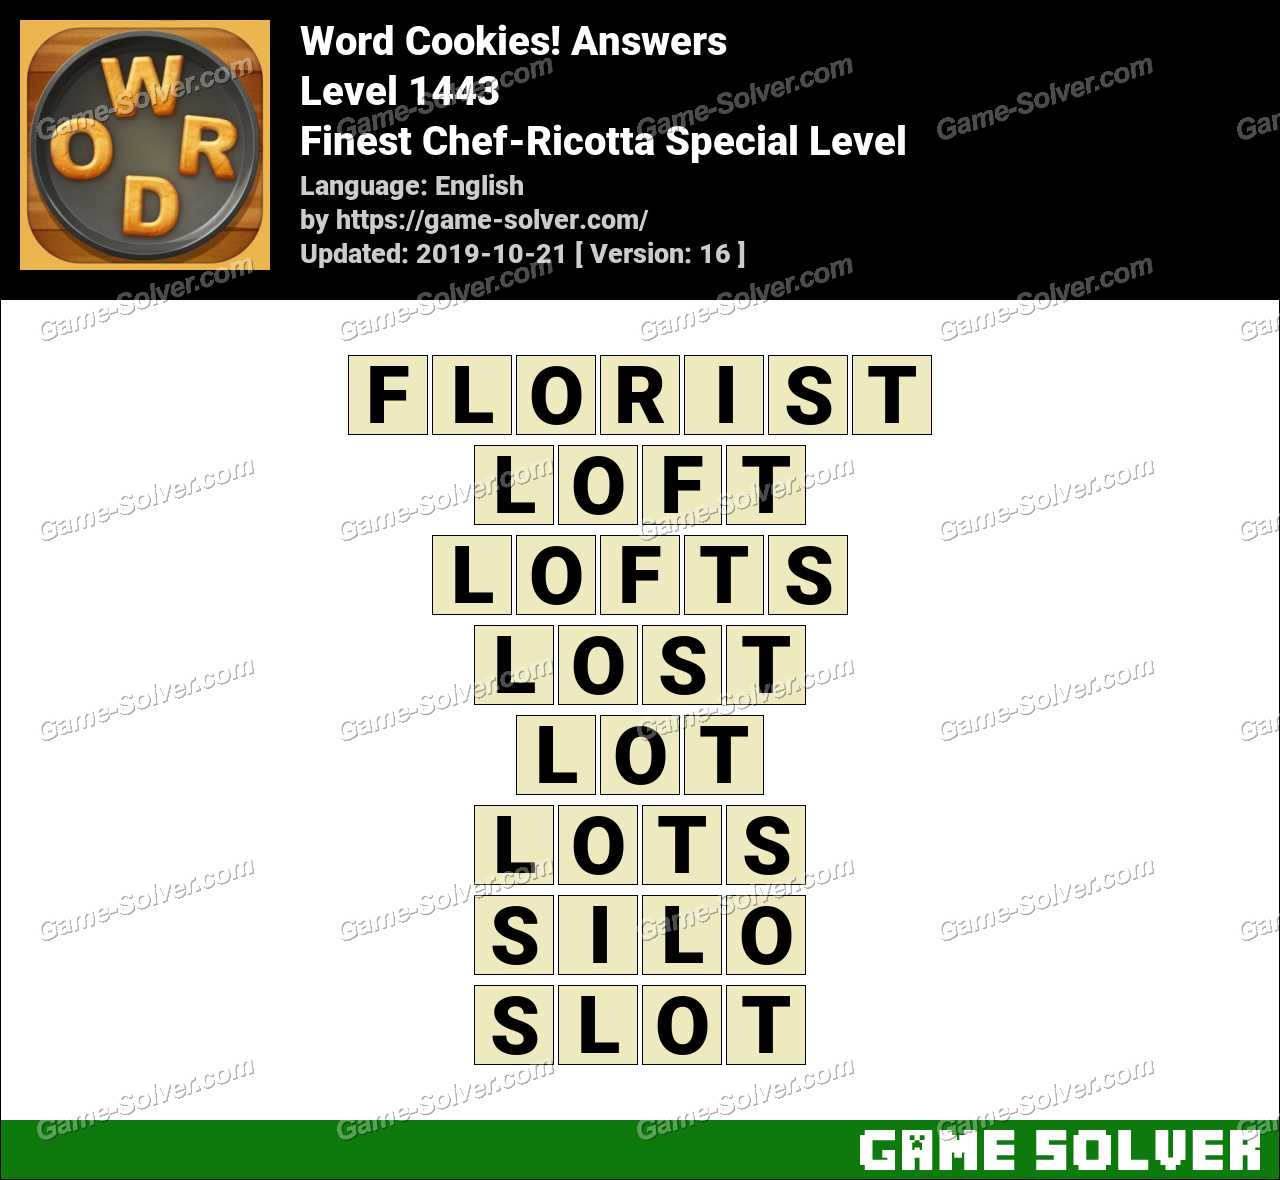 Word Cookies Finest Chef-Ricotta Special Level Answers